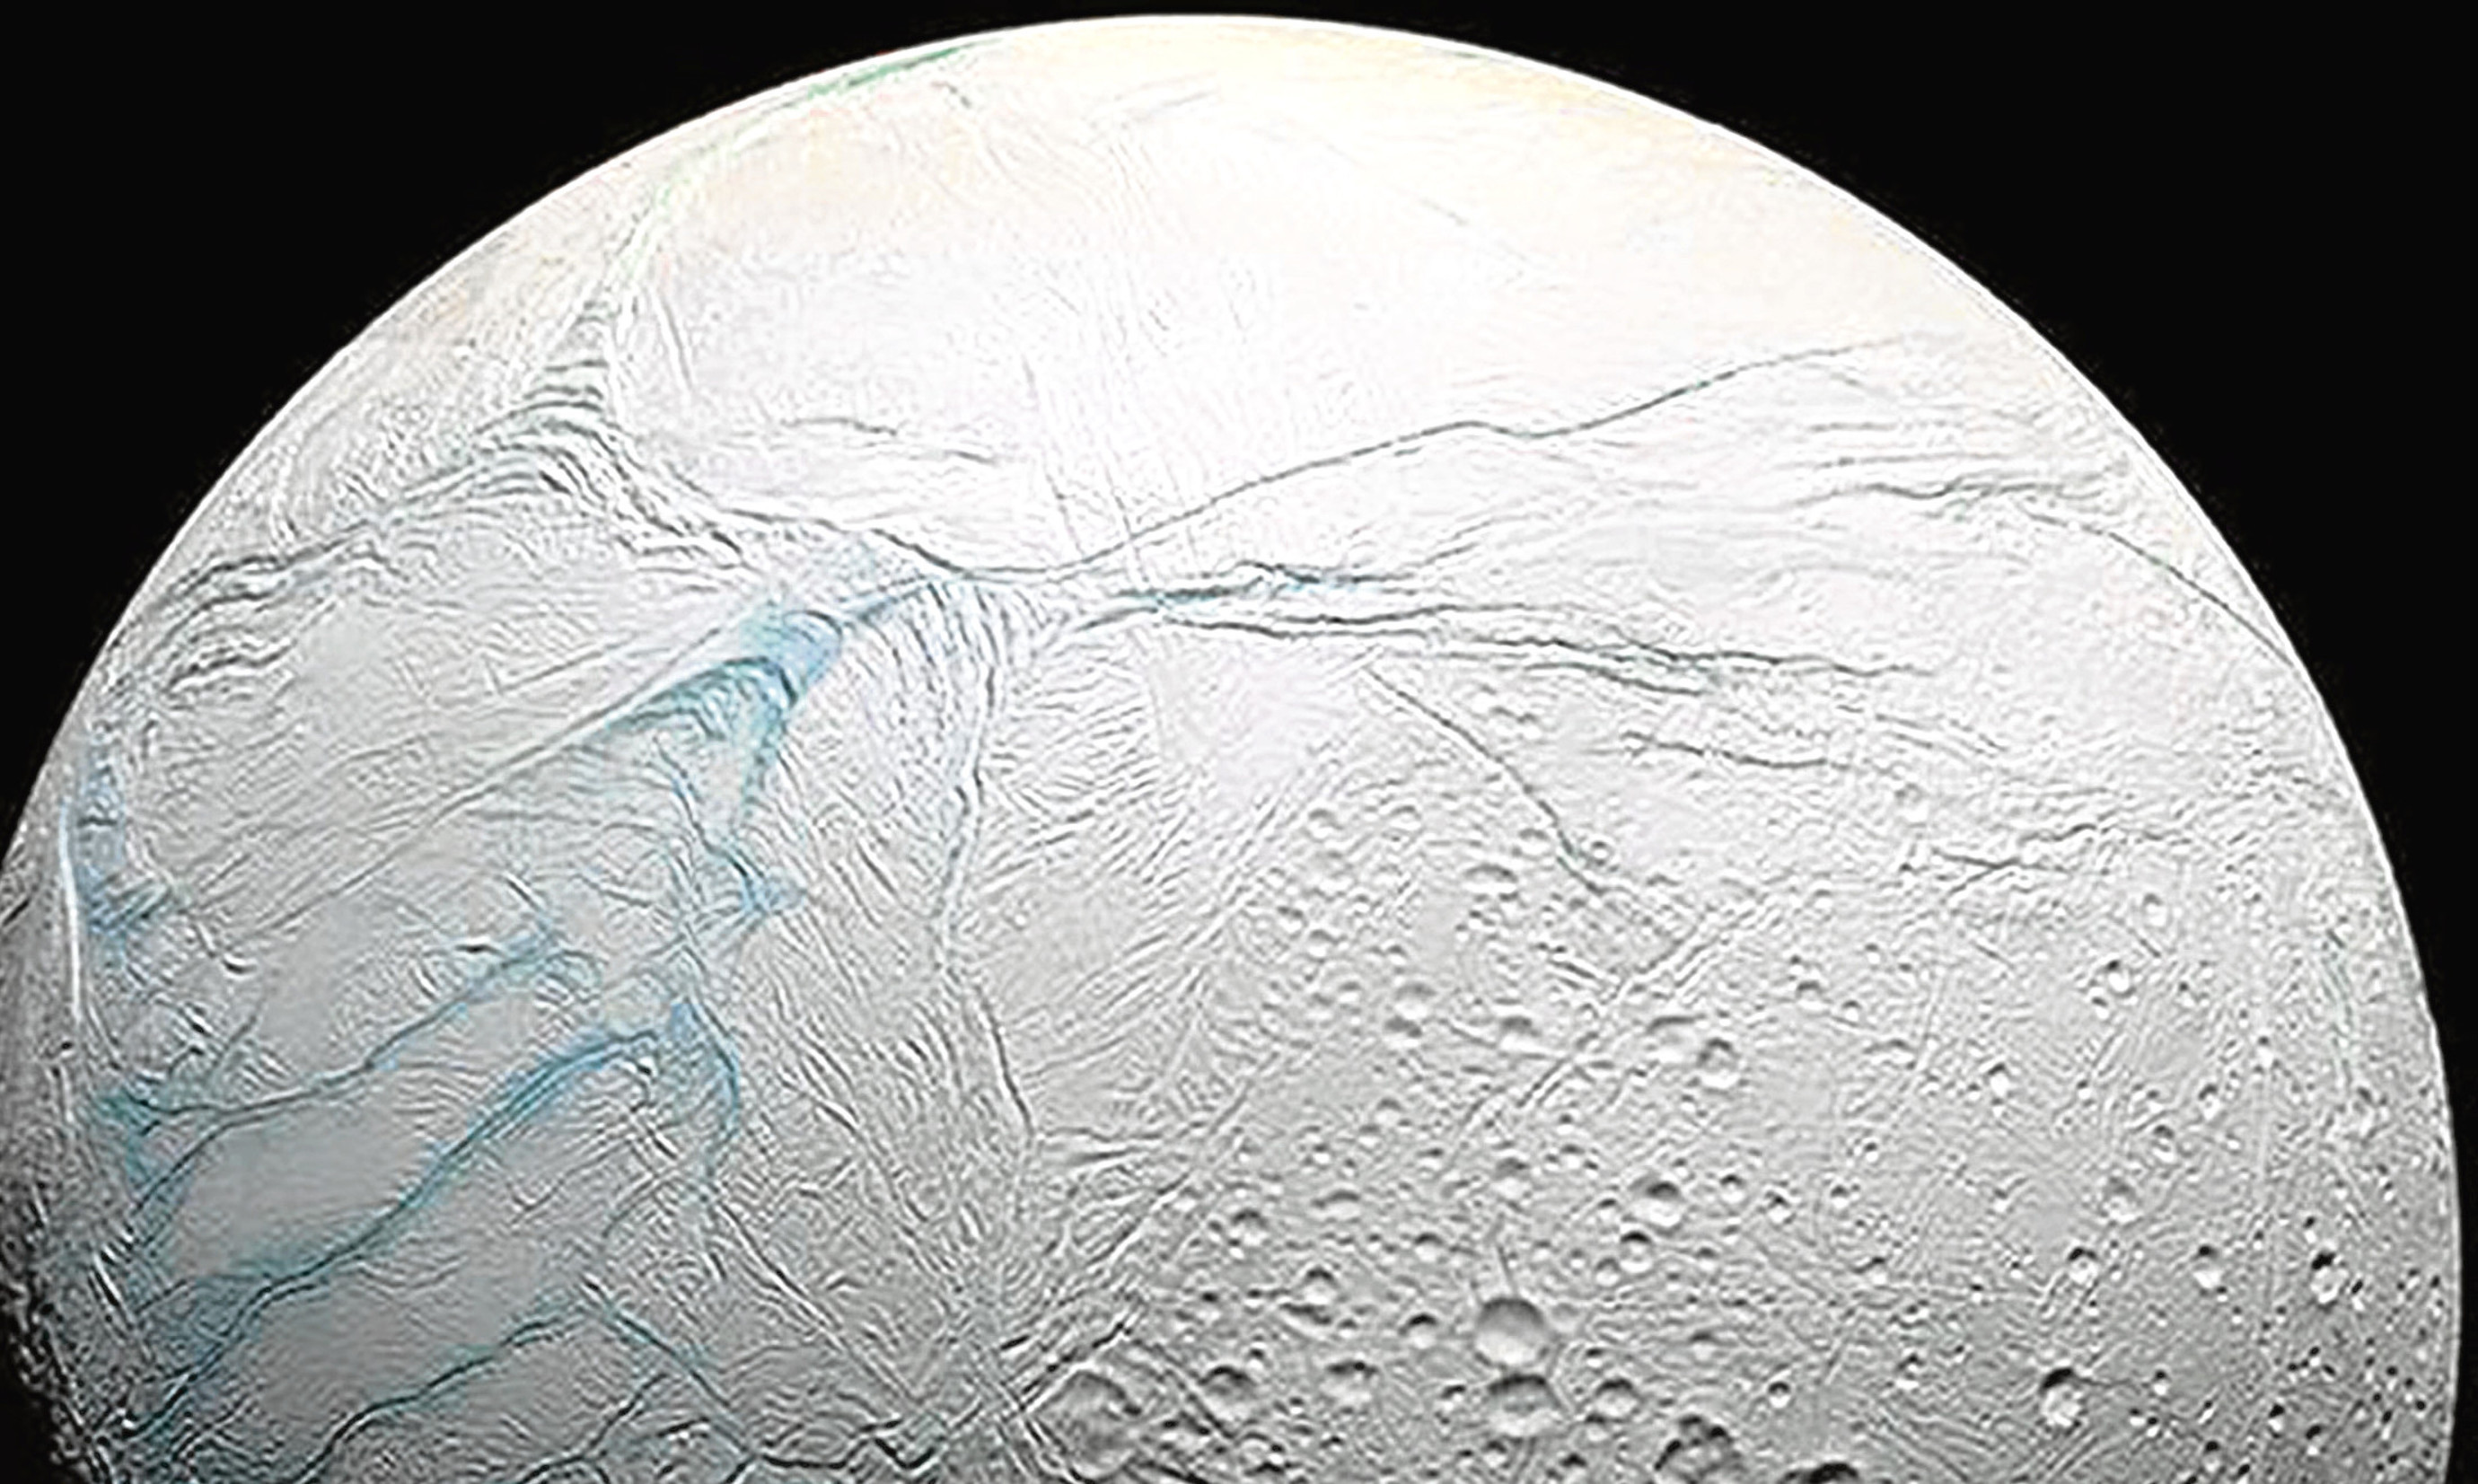 Saturn's moon Enceladus may hold life - just not very interesting life.